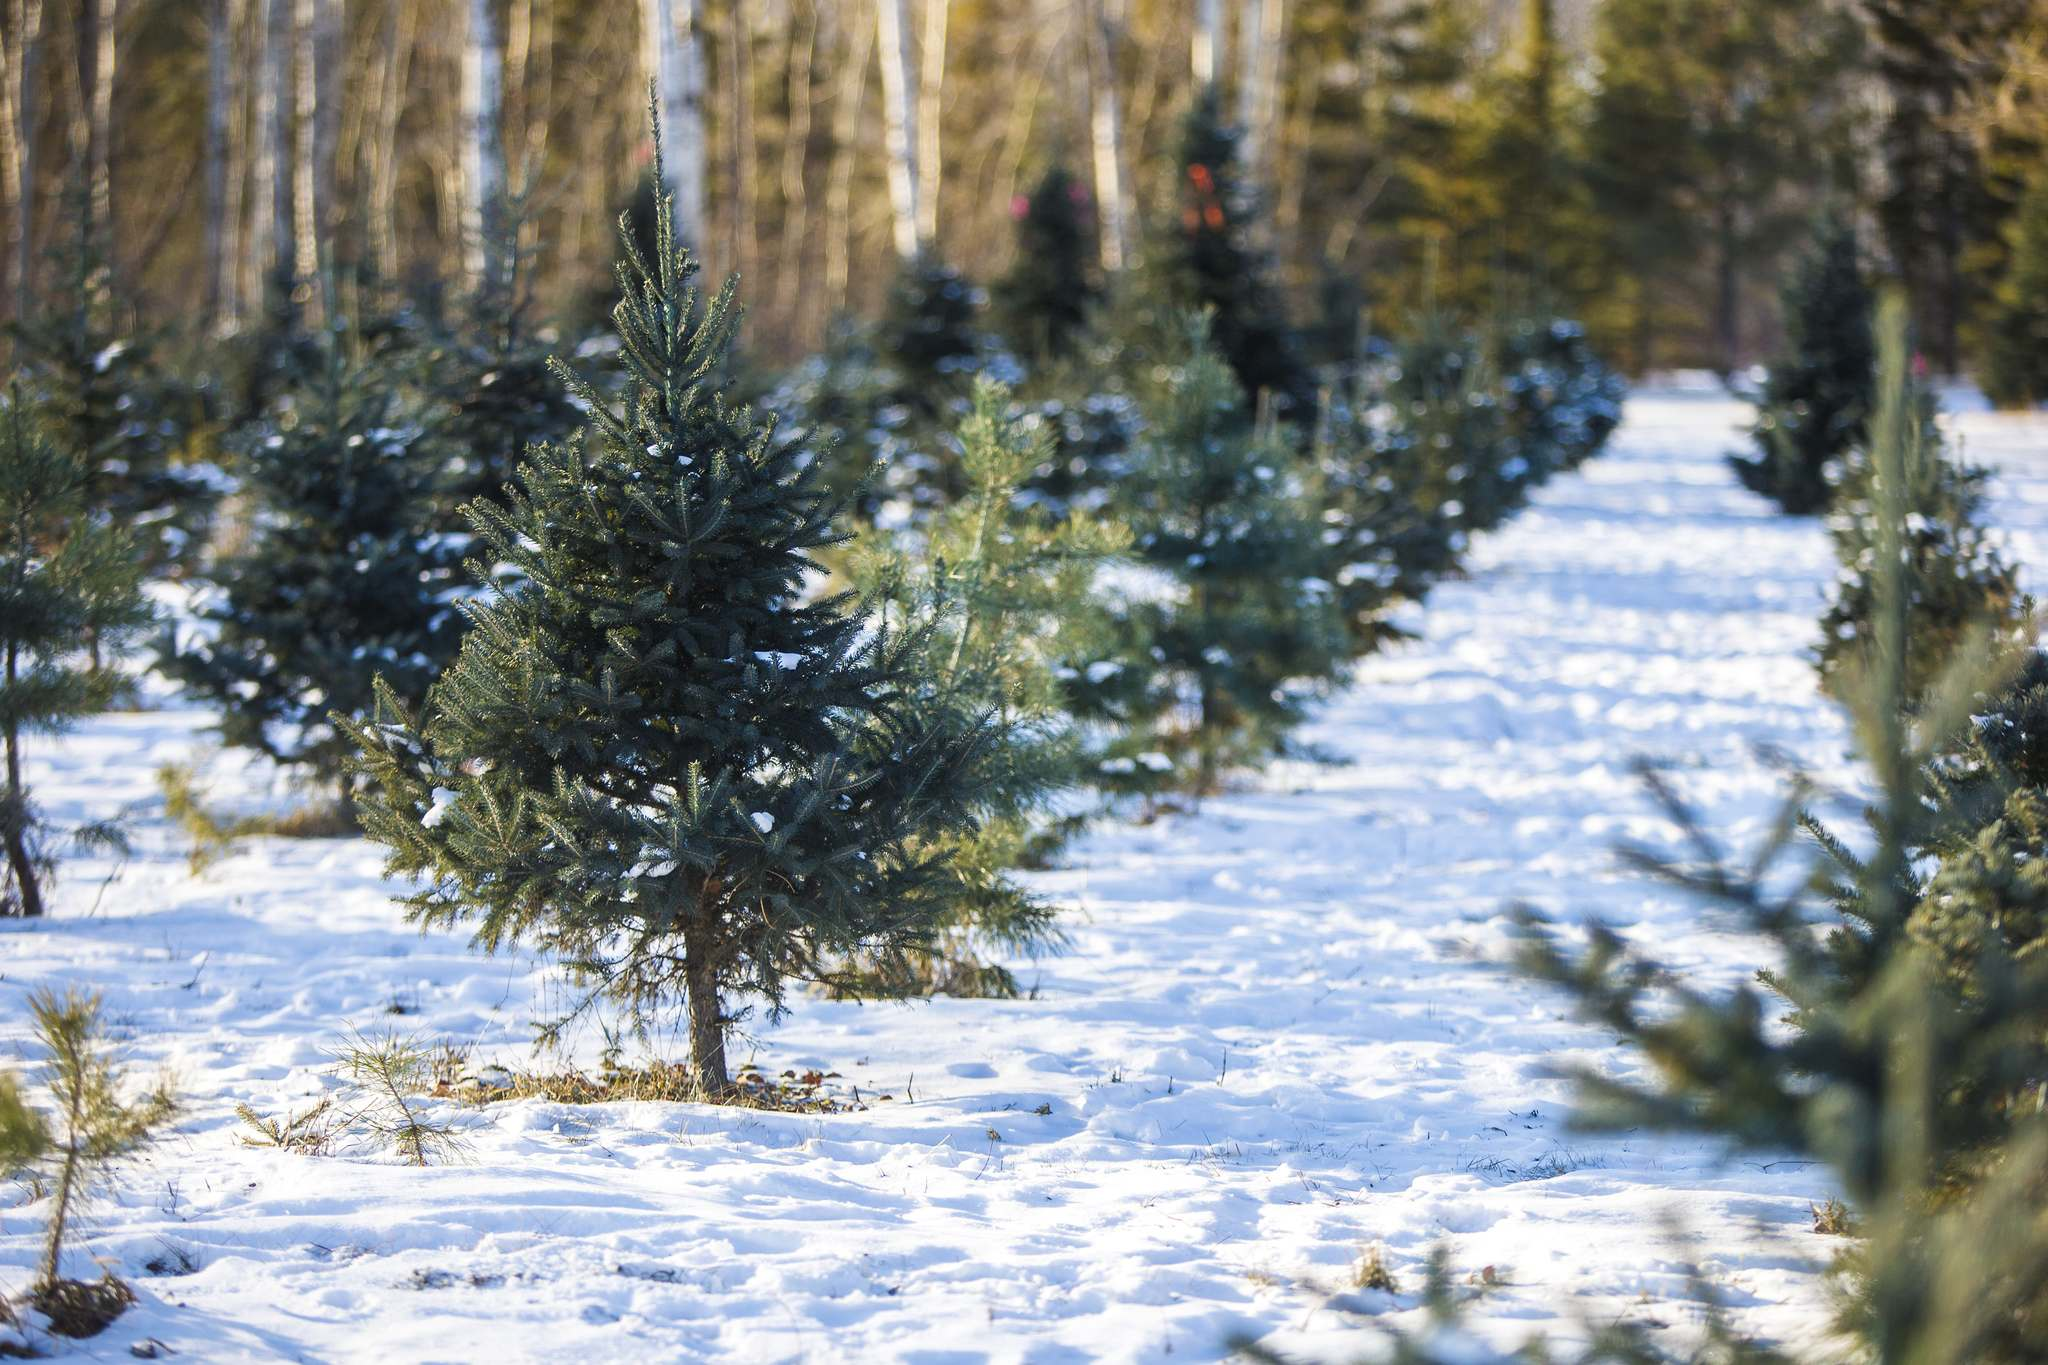 Fact or Fiction: Undecorated Christmas trees selling for $6,500?